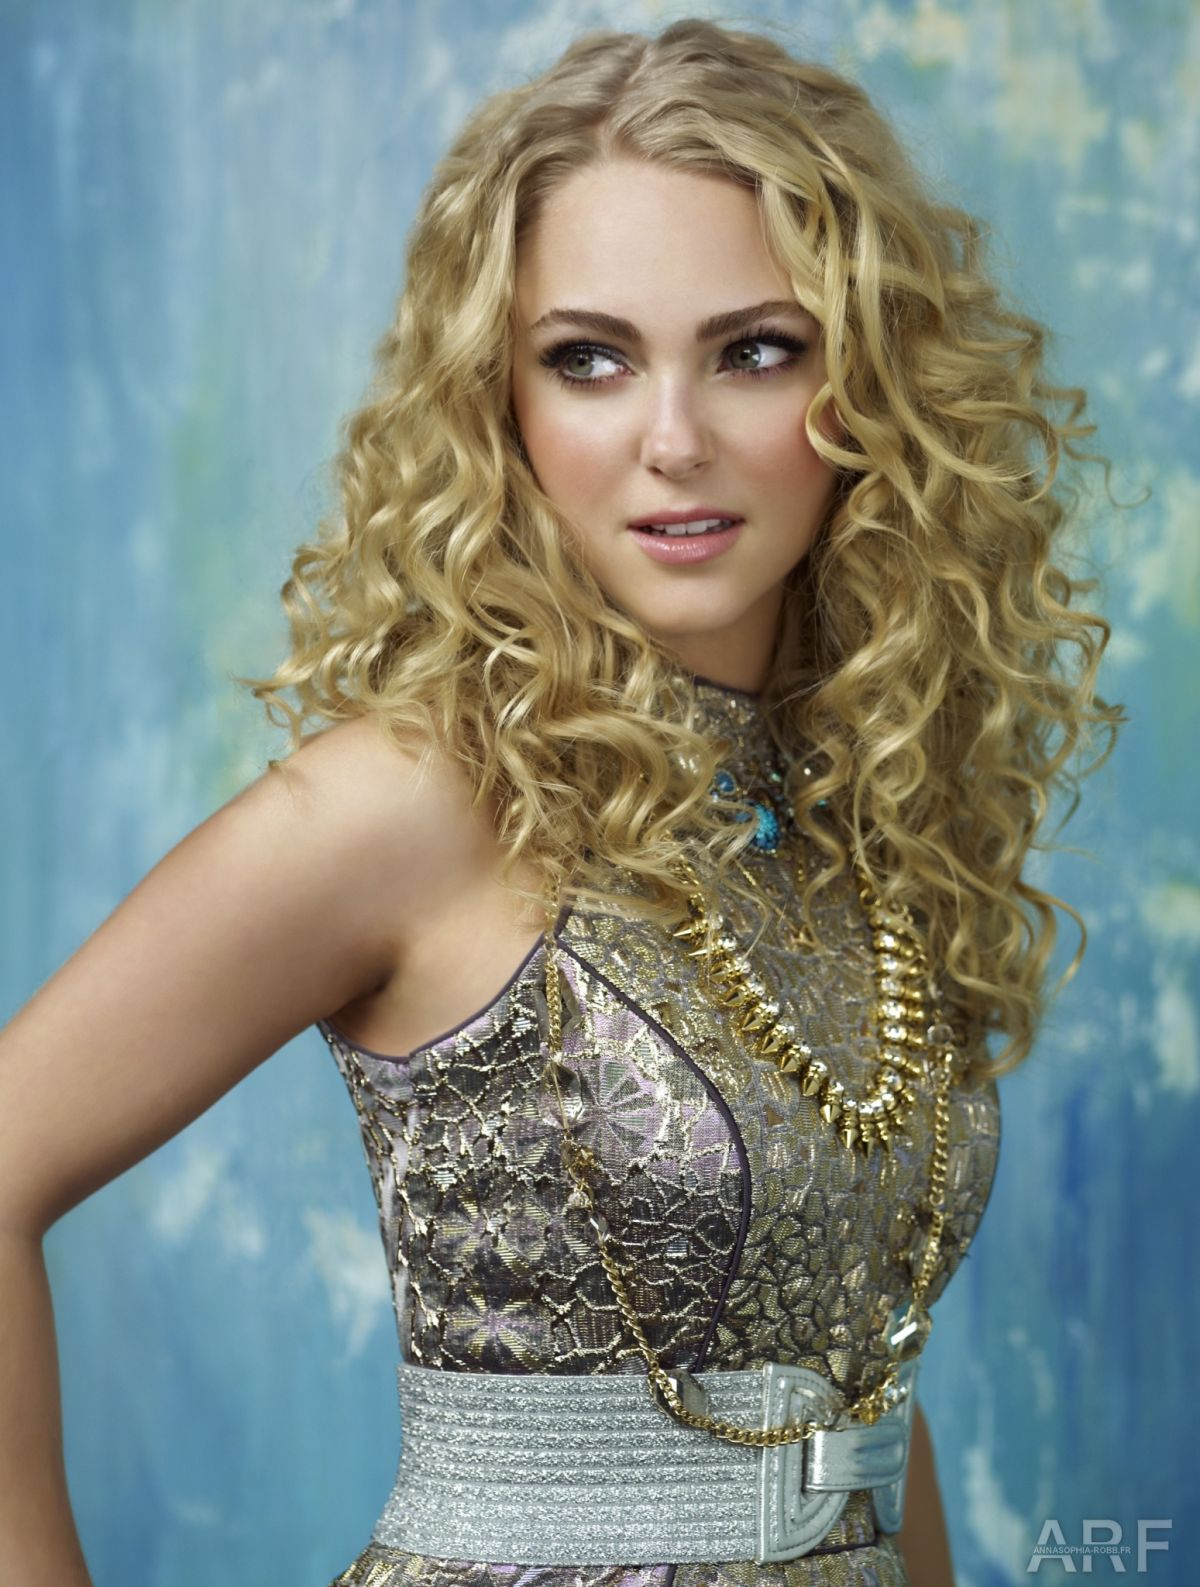 ANNASOPHIA ROBB - The Carrie Diaries Promo